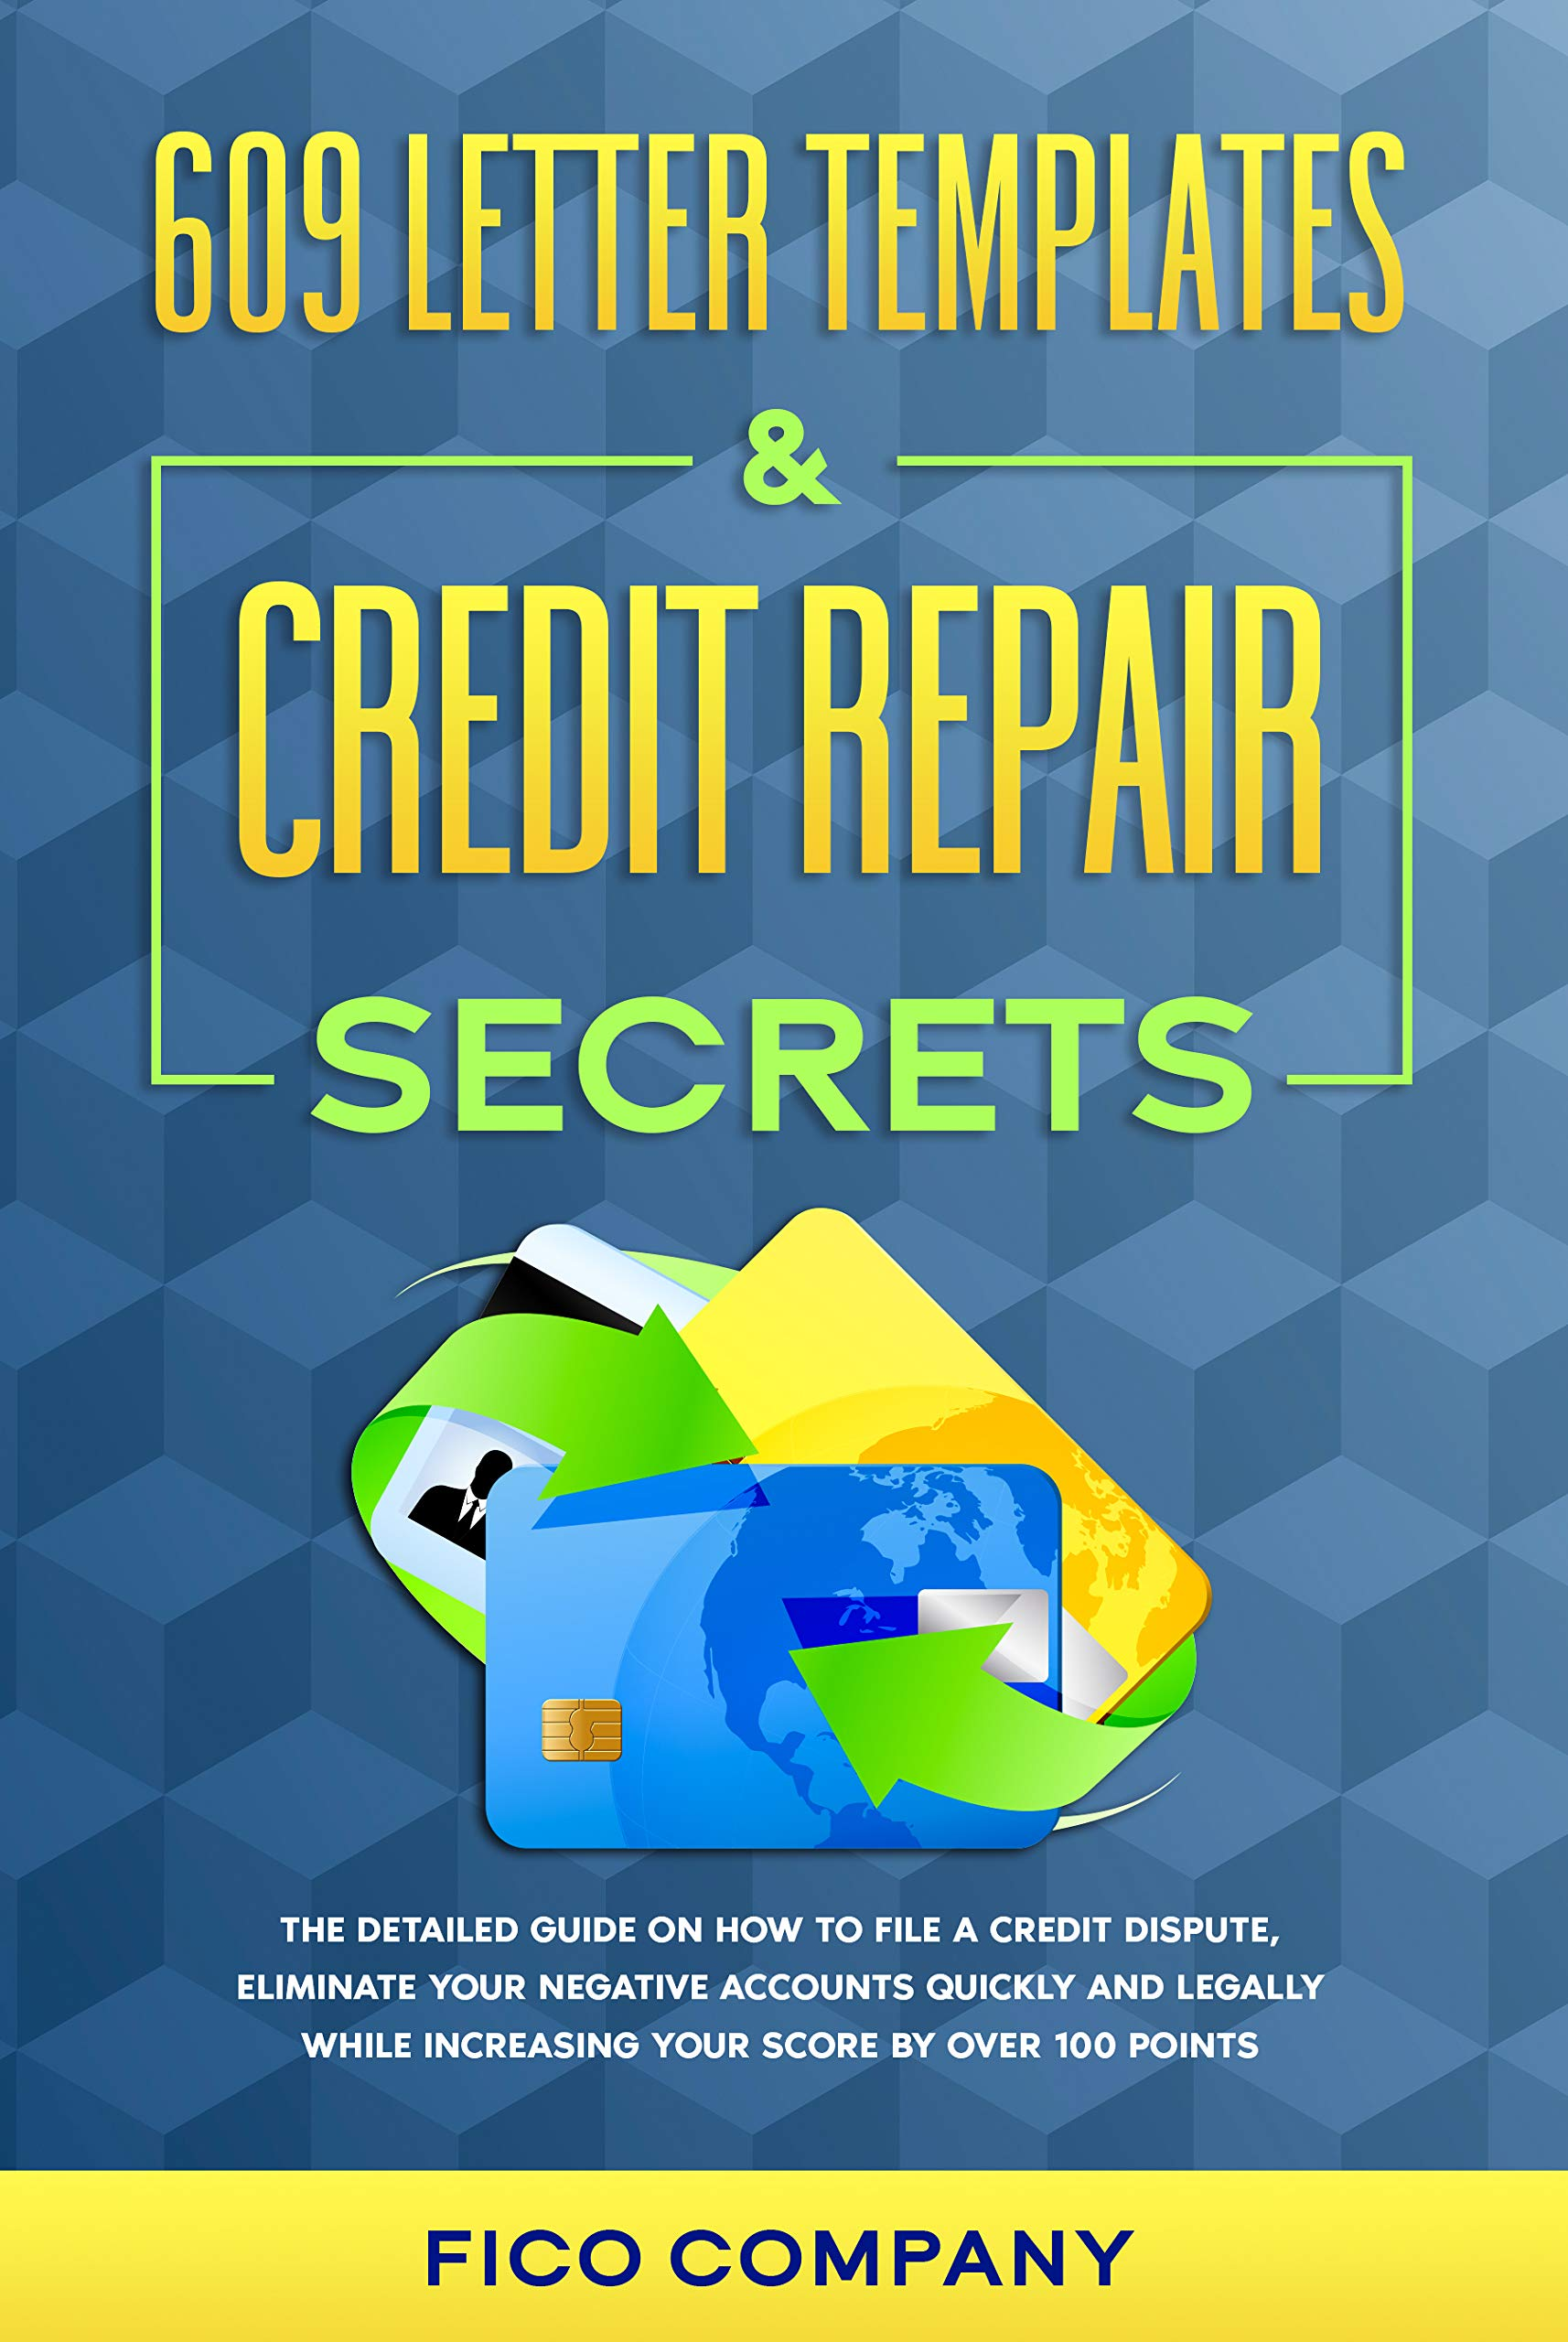 609 LETTER TEMPLATES & CREDIT REPAIR SECRETS: The Detailed Guide on How To File a Credit Dispute, Eliminate Your Negative Accounts Quickly and Legally While Increasing Your Score by Over 100 Points